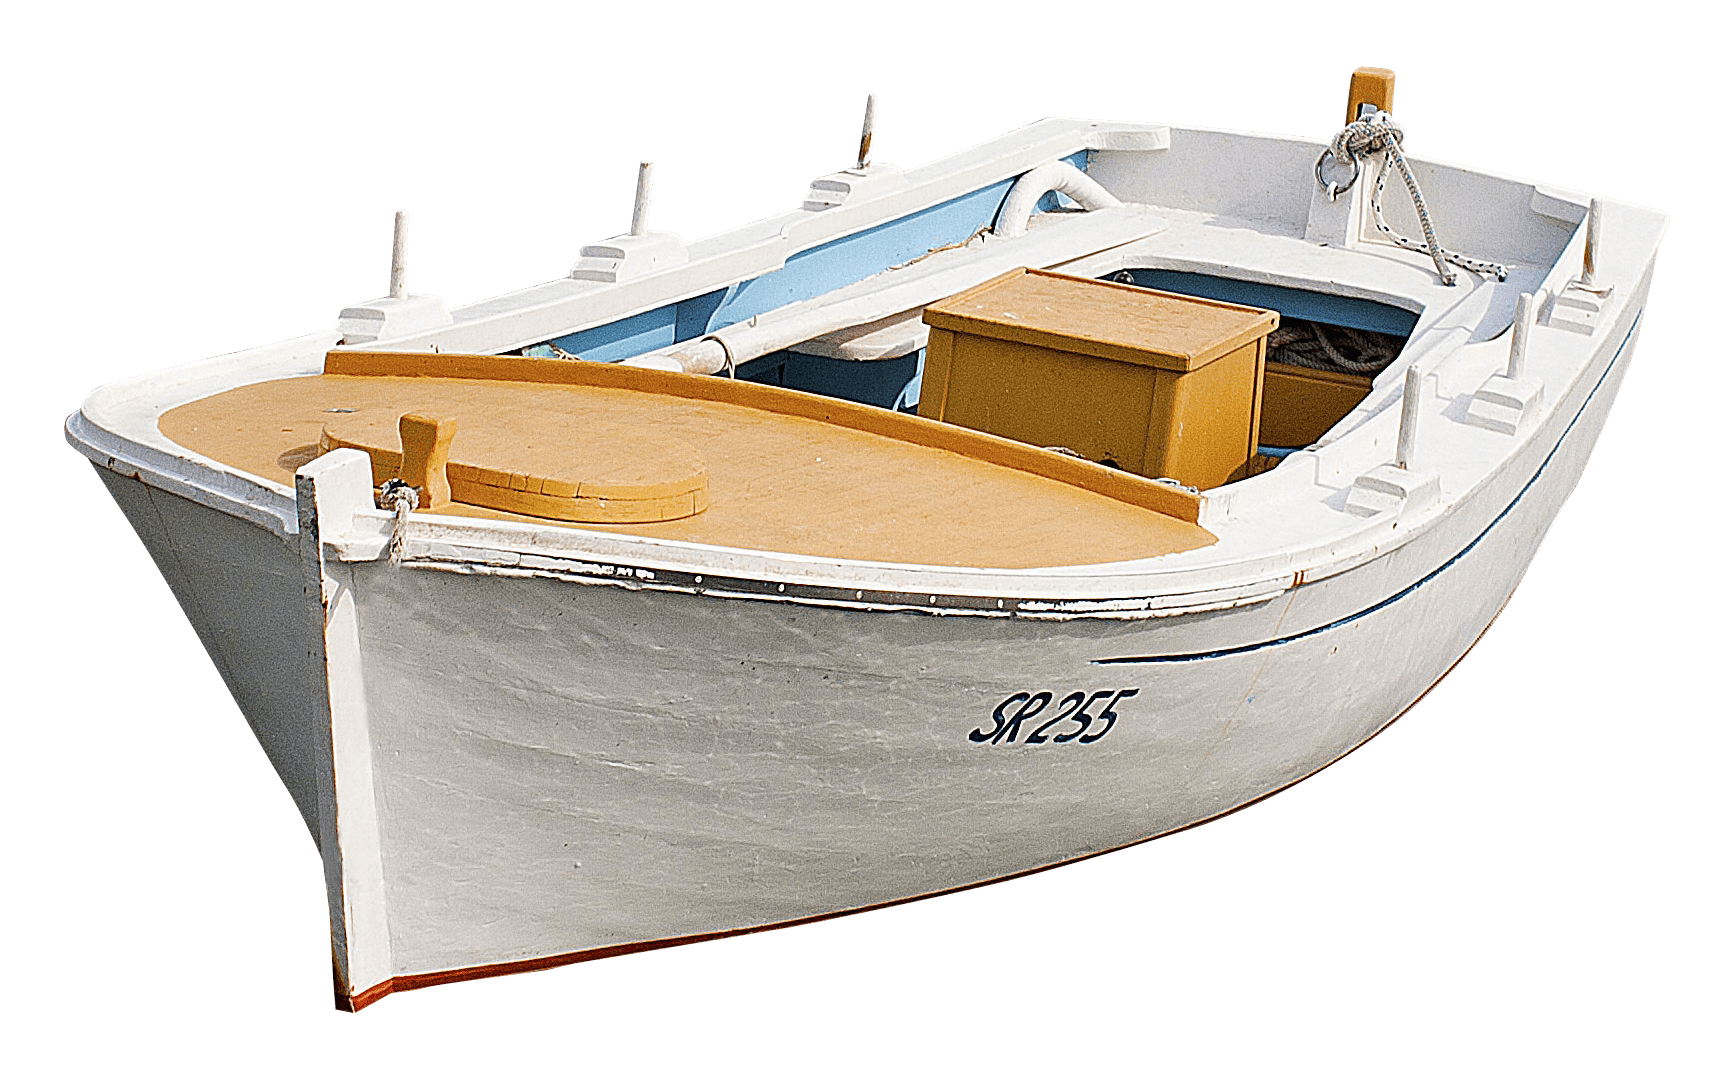 Transparent boats wooden. White boat png stickpng